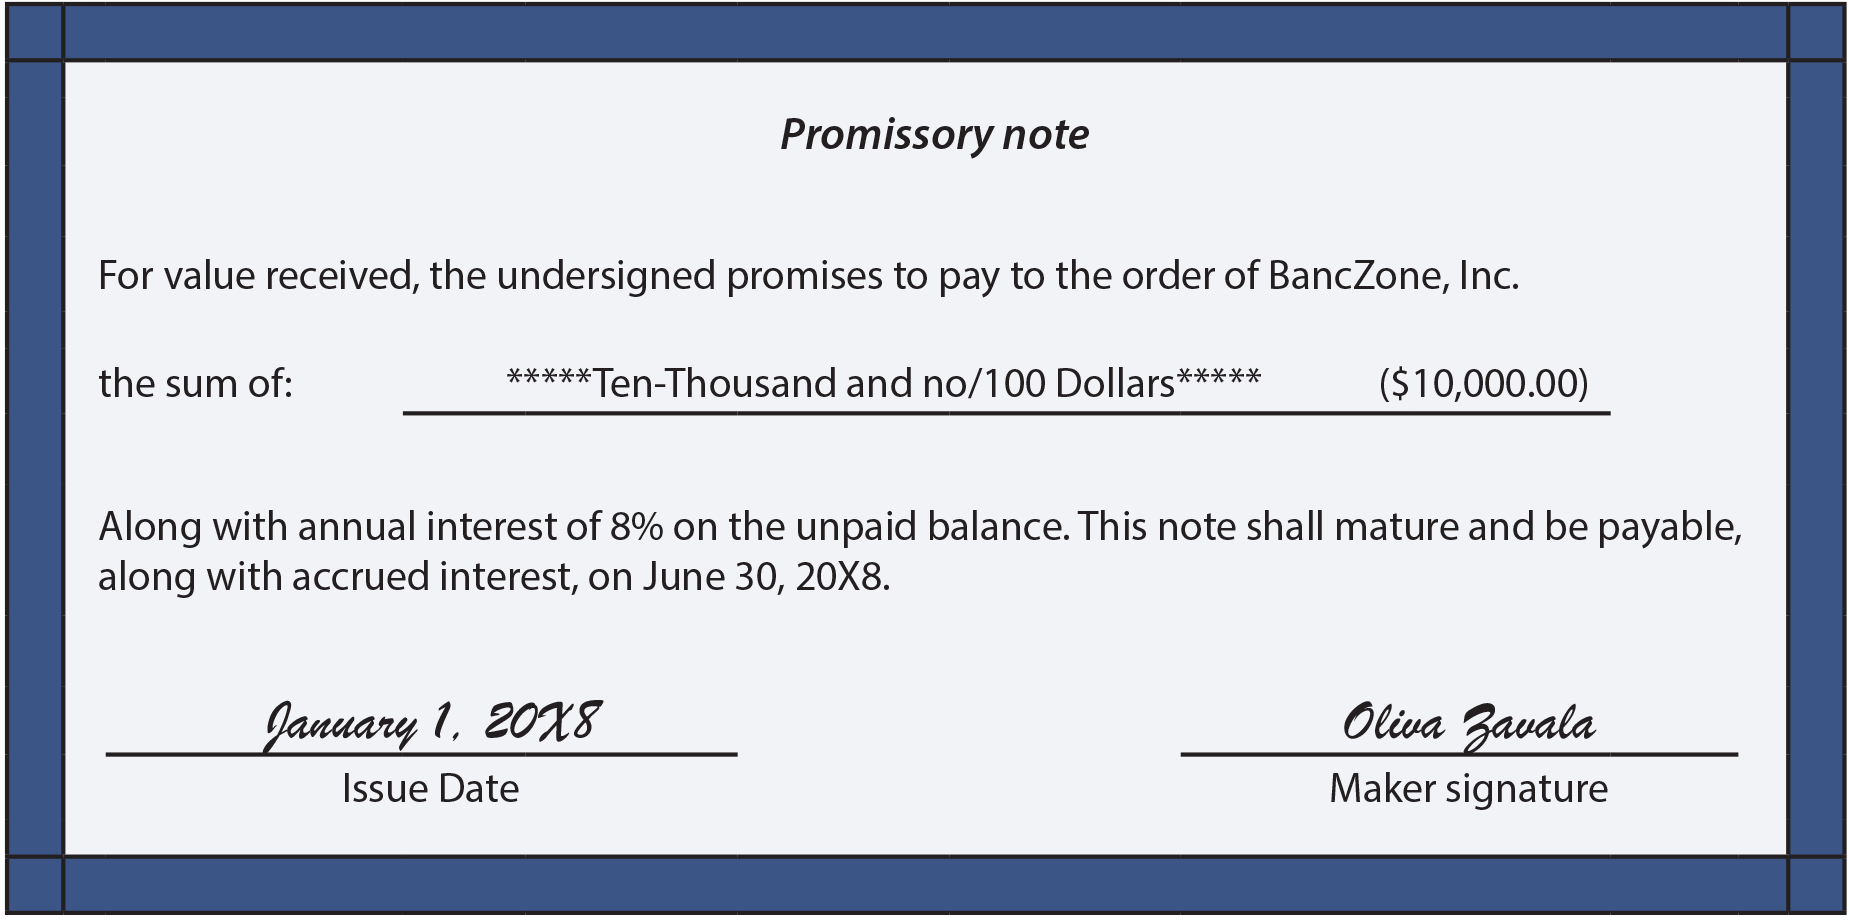 Notes Payable Principlesofaccountingcom - Promissory note with interest template